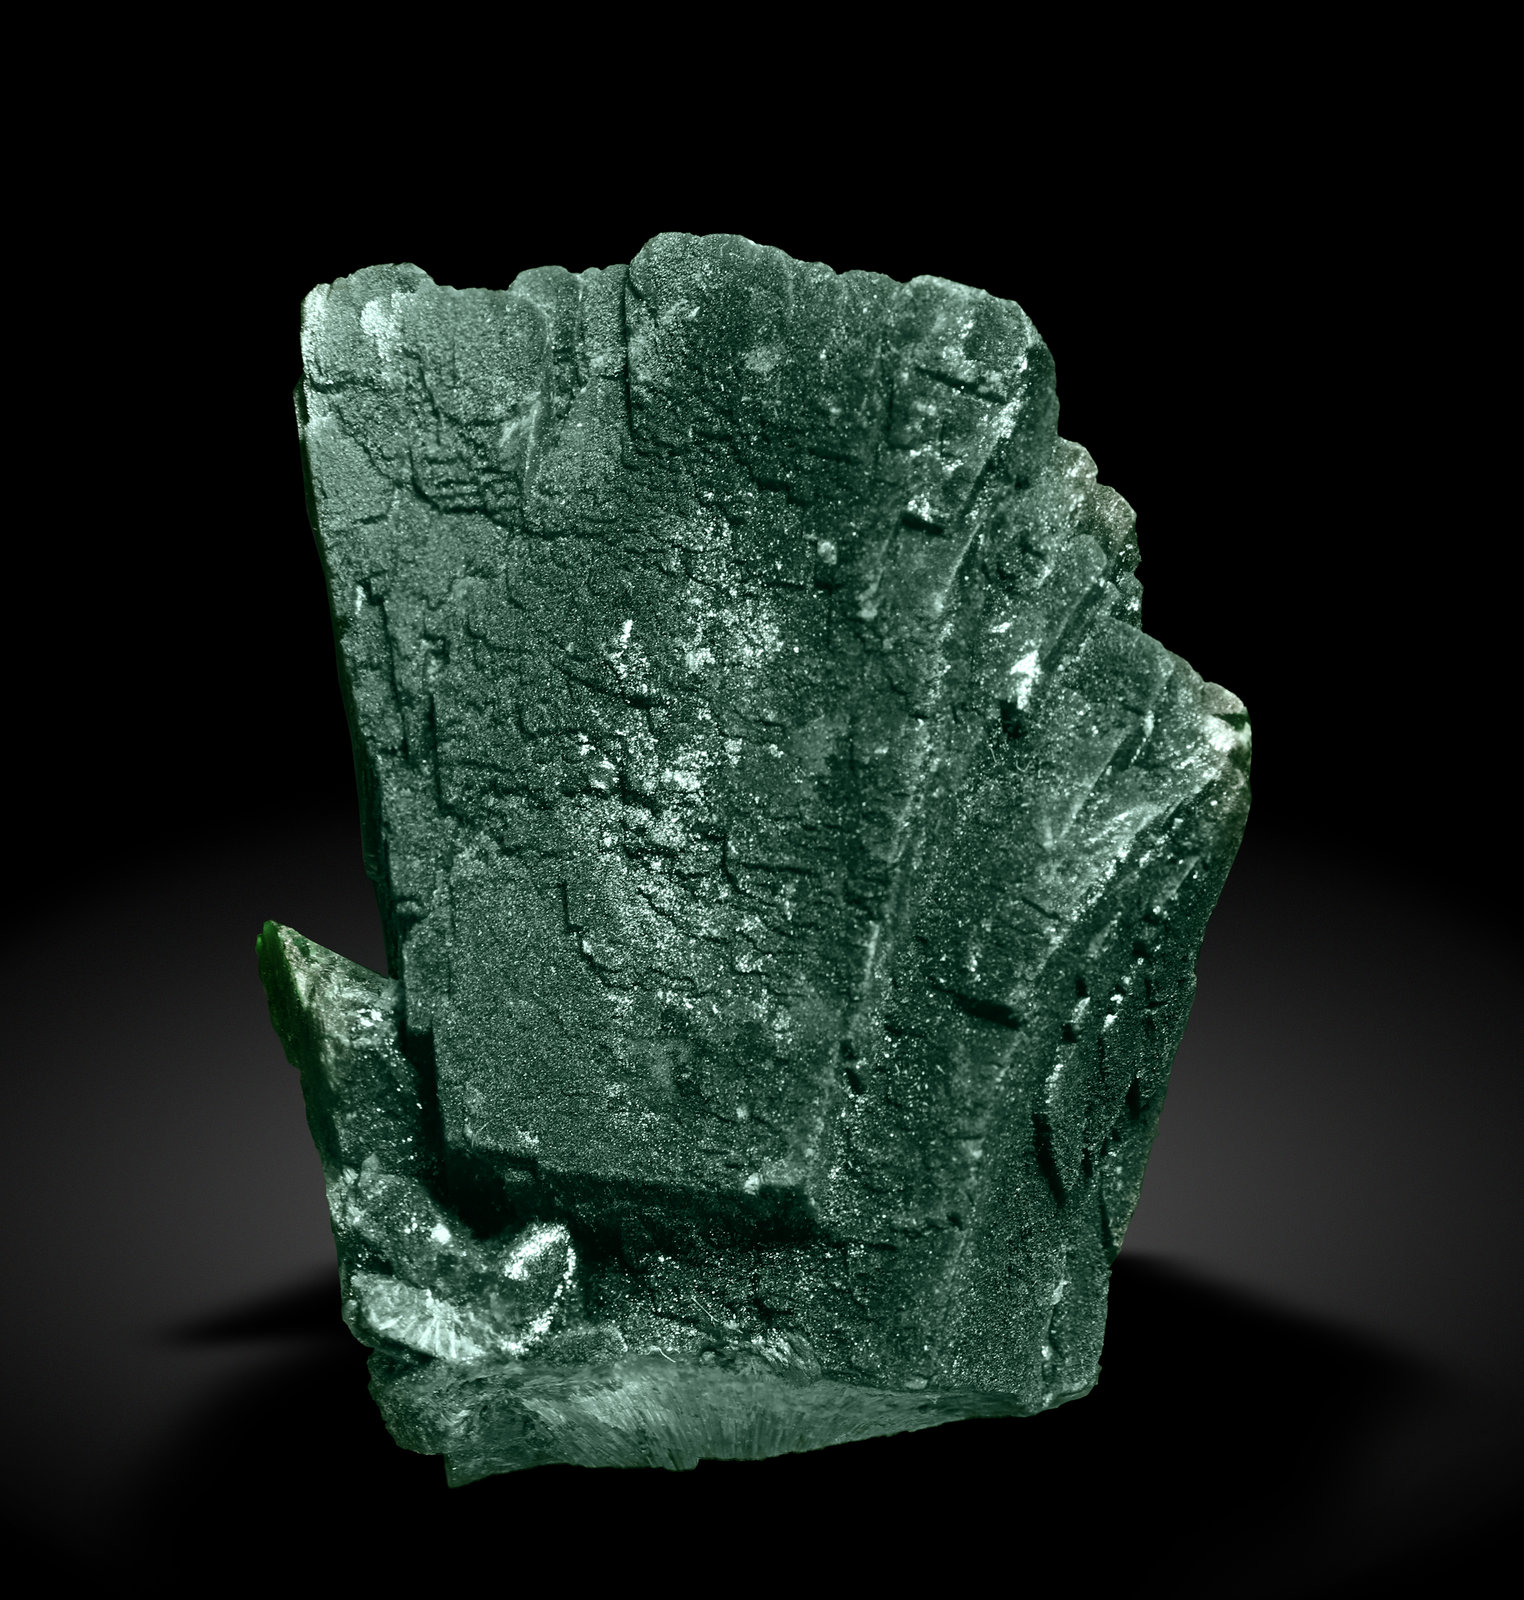 specimens/s_imagesAI9/Malachite-TP16AI9_6073_r.jpg